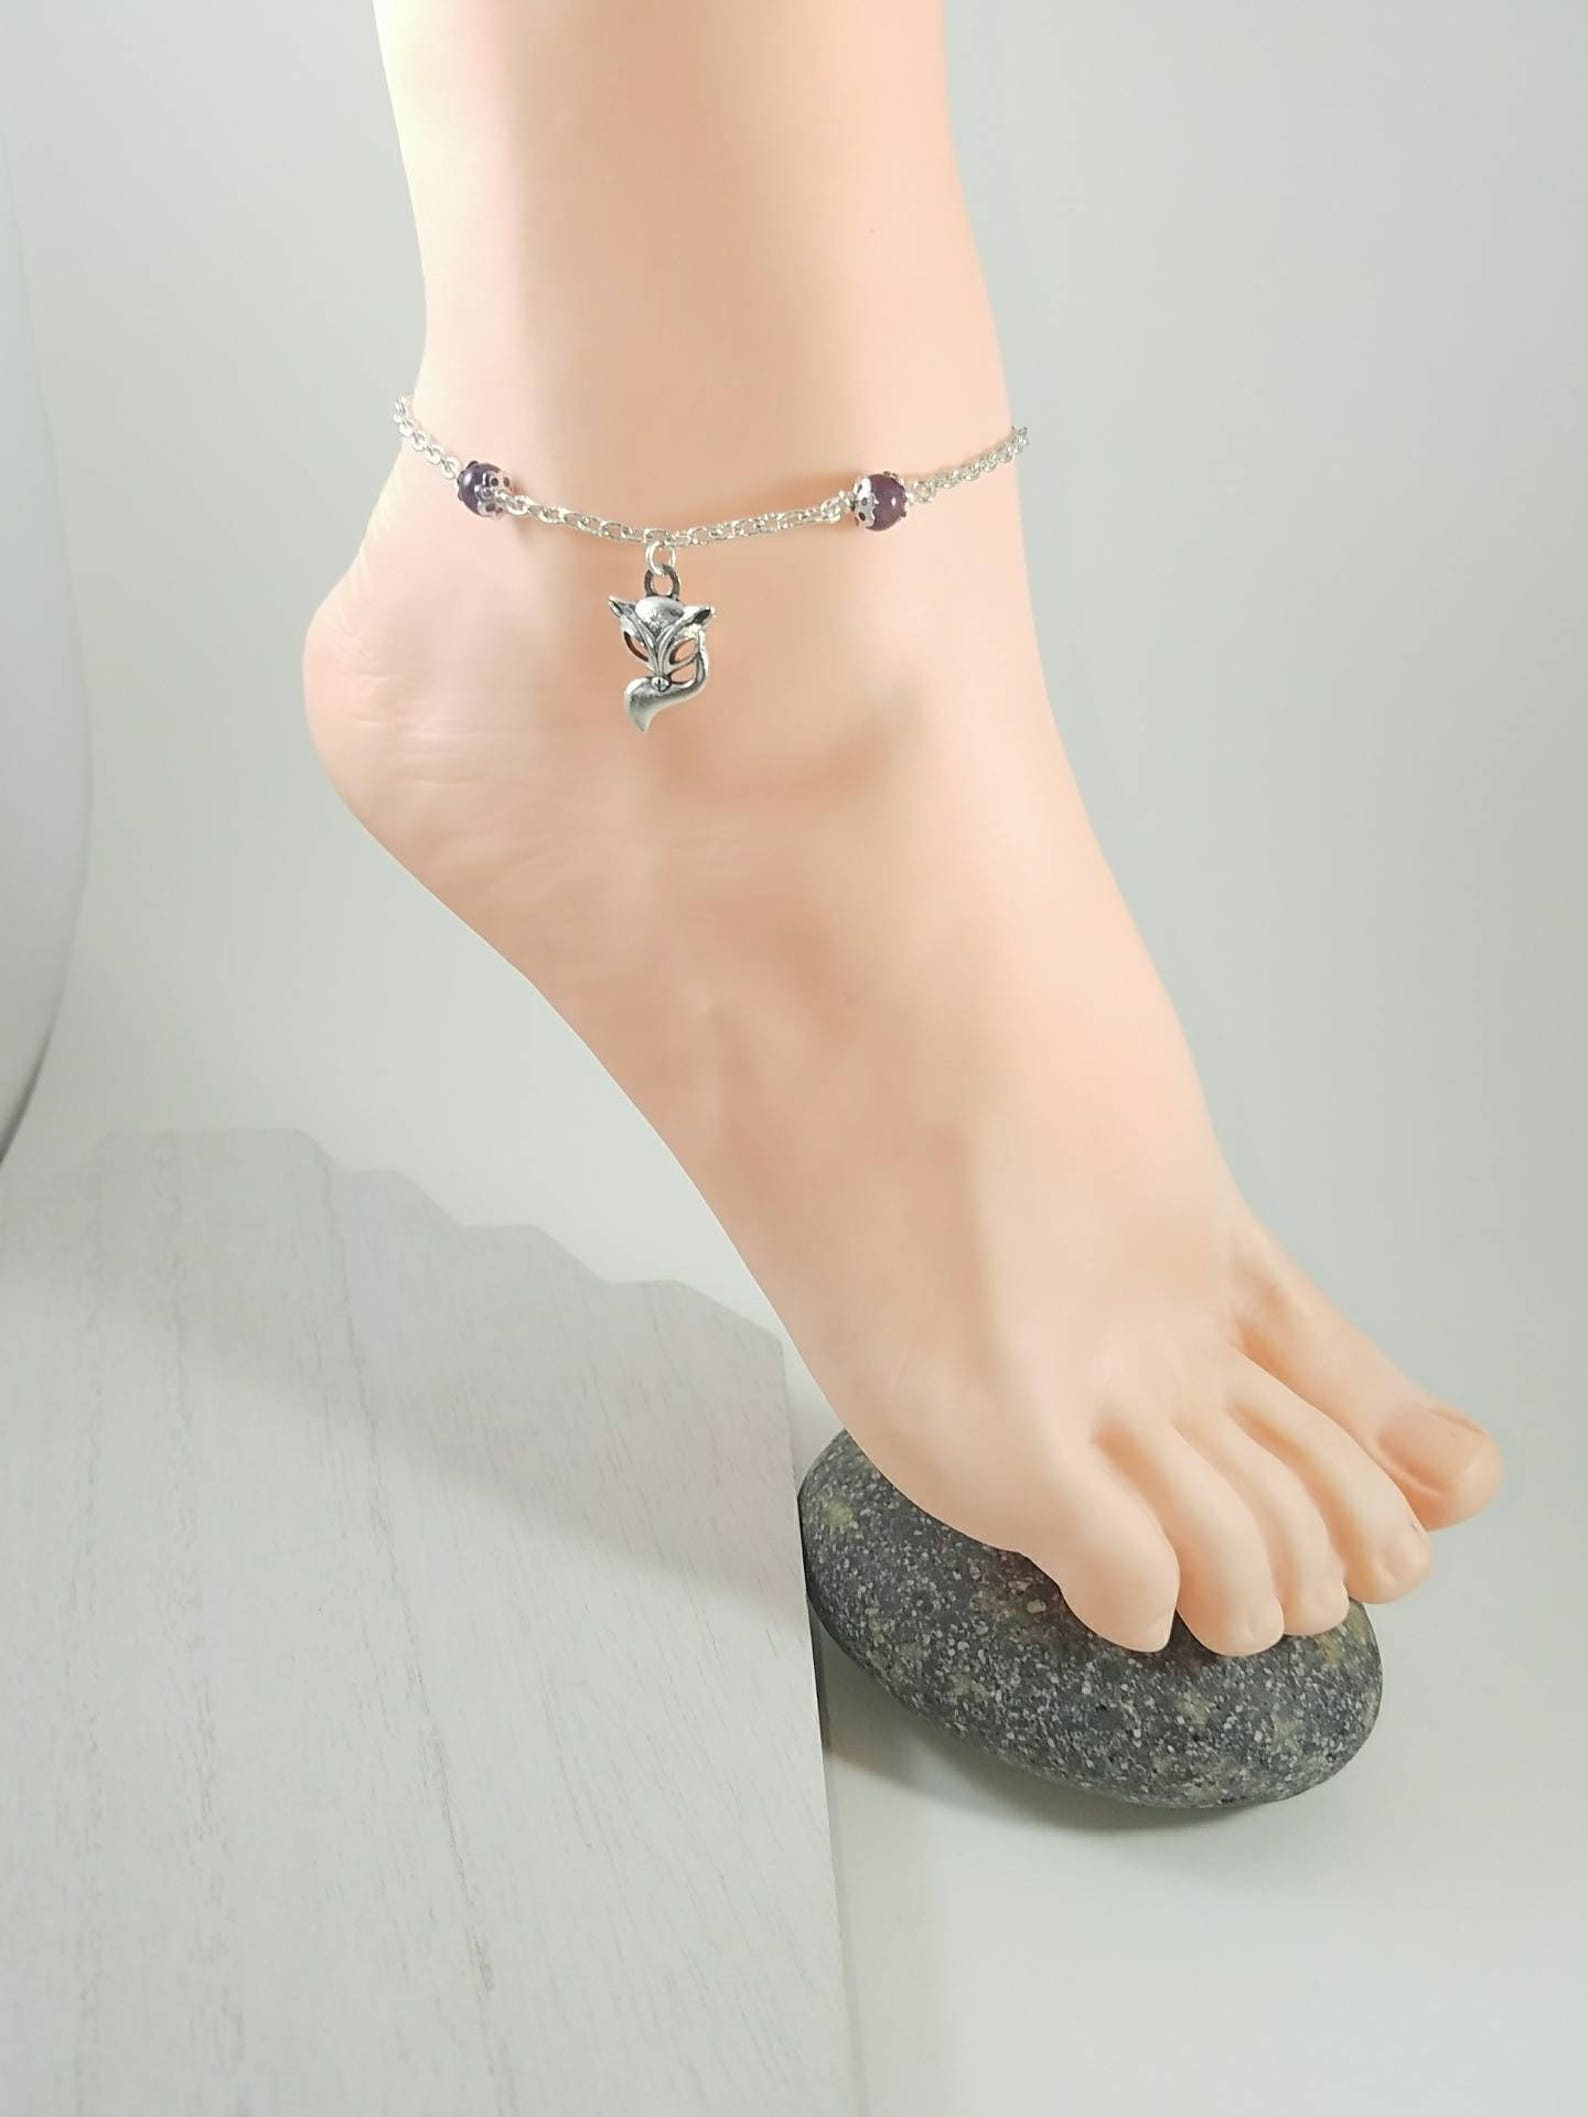 Buy Infinity Heart Anklet from Vixen & Stag - Vixen And Stag